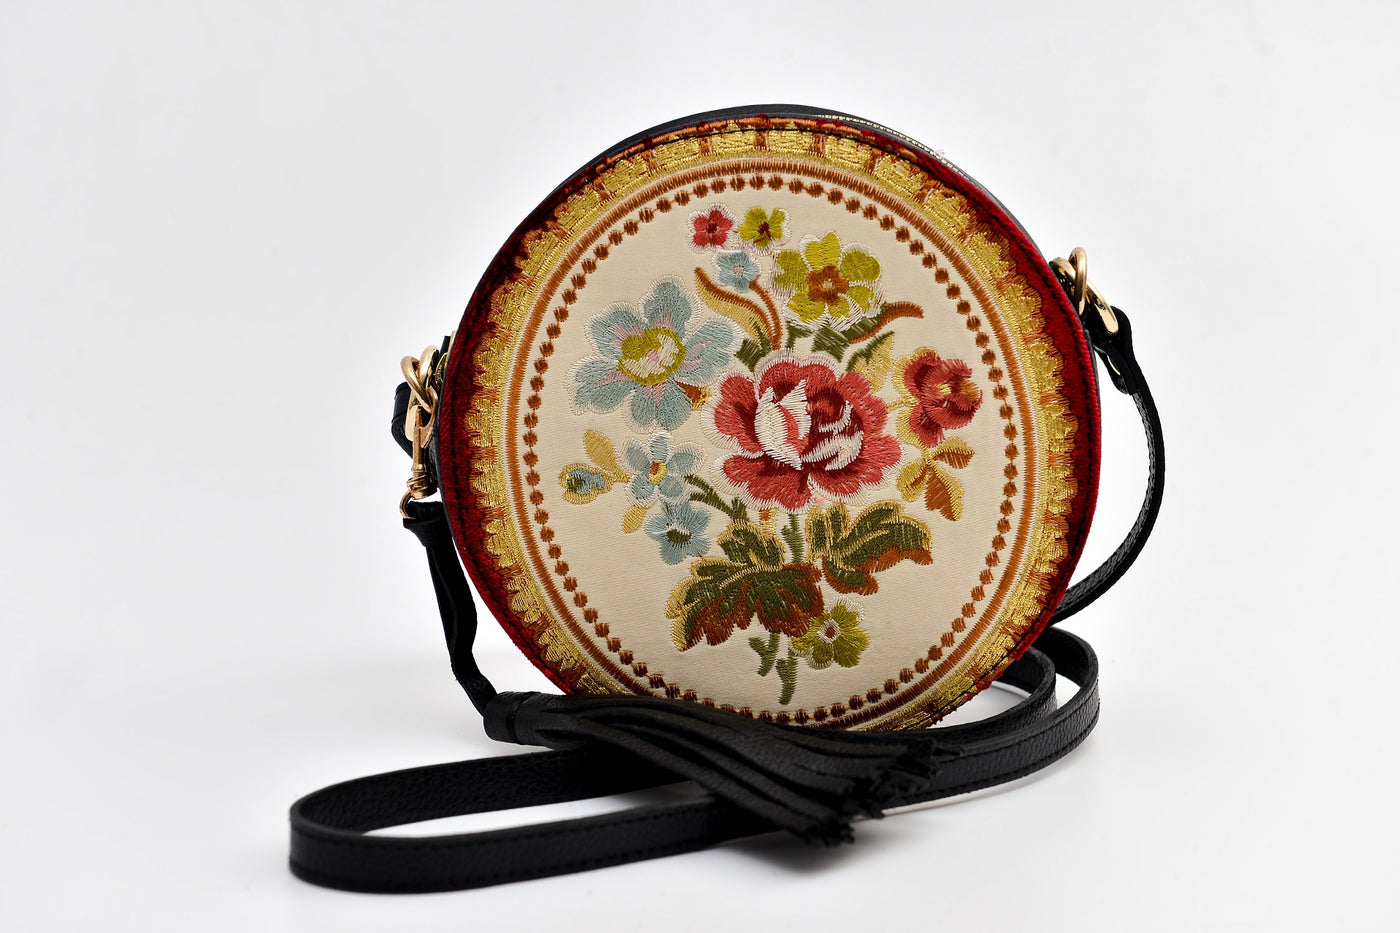 Batool Circle Bag Vintage Flower Embroidery